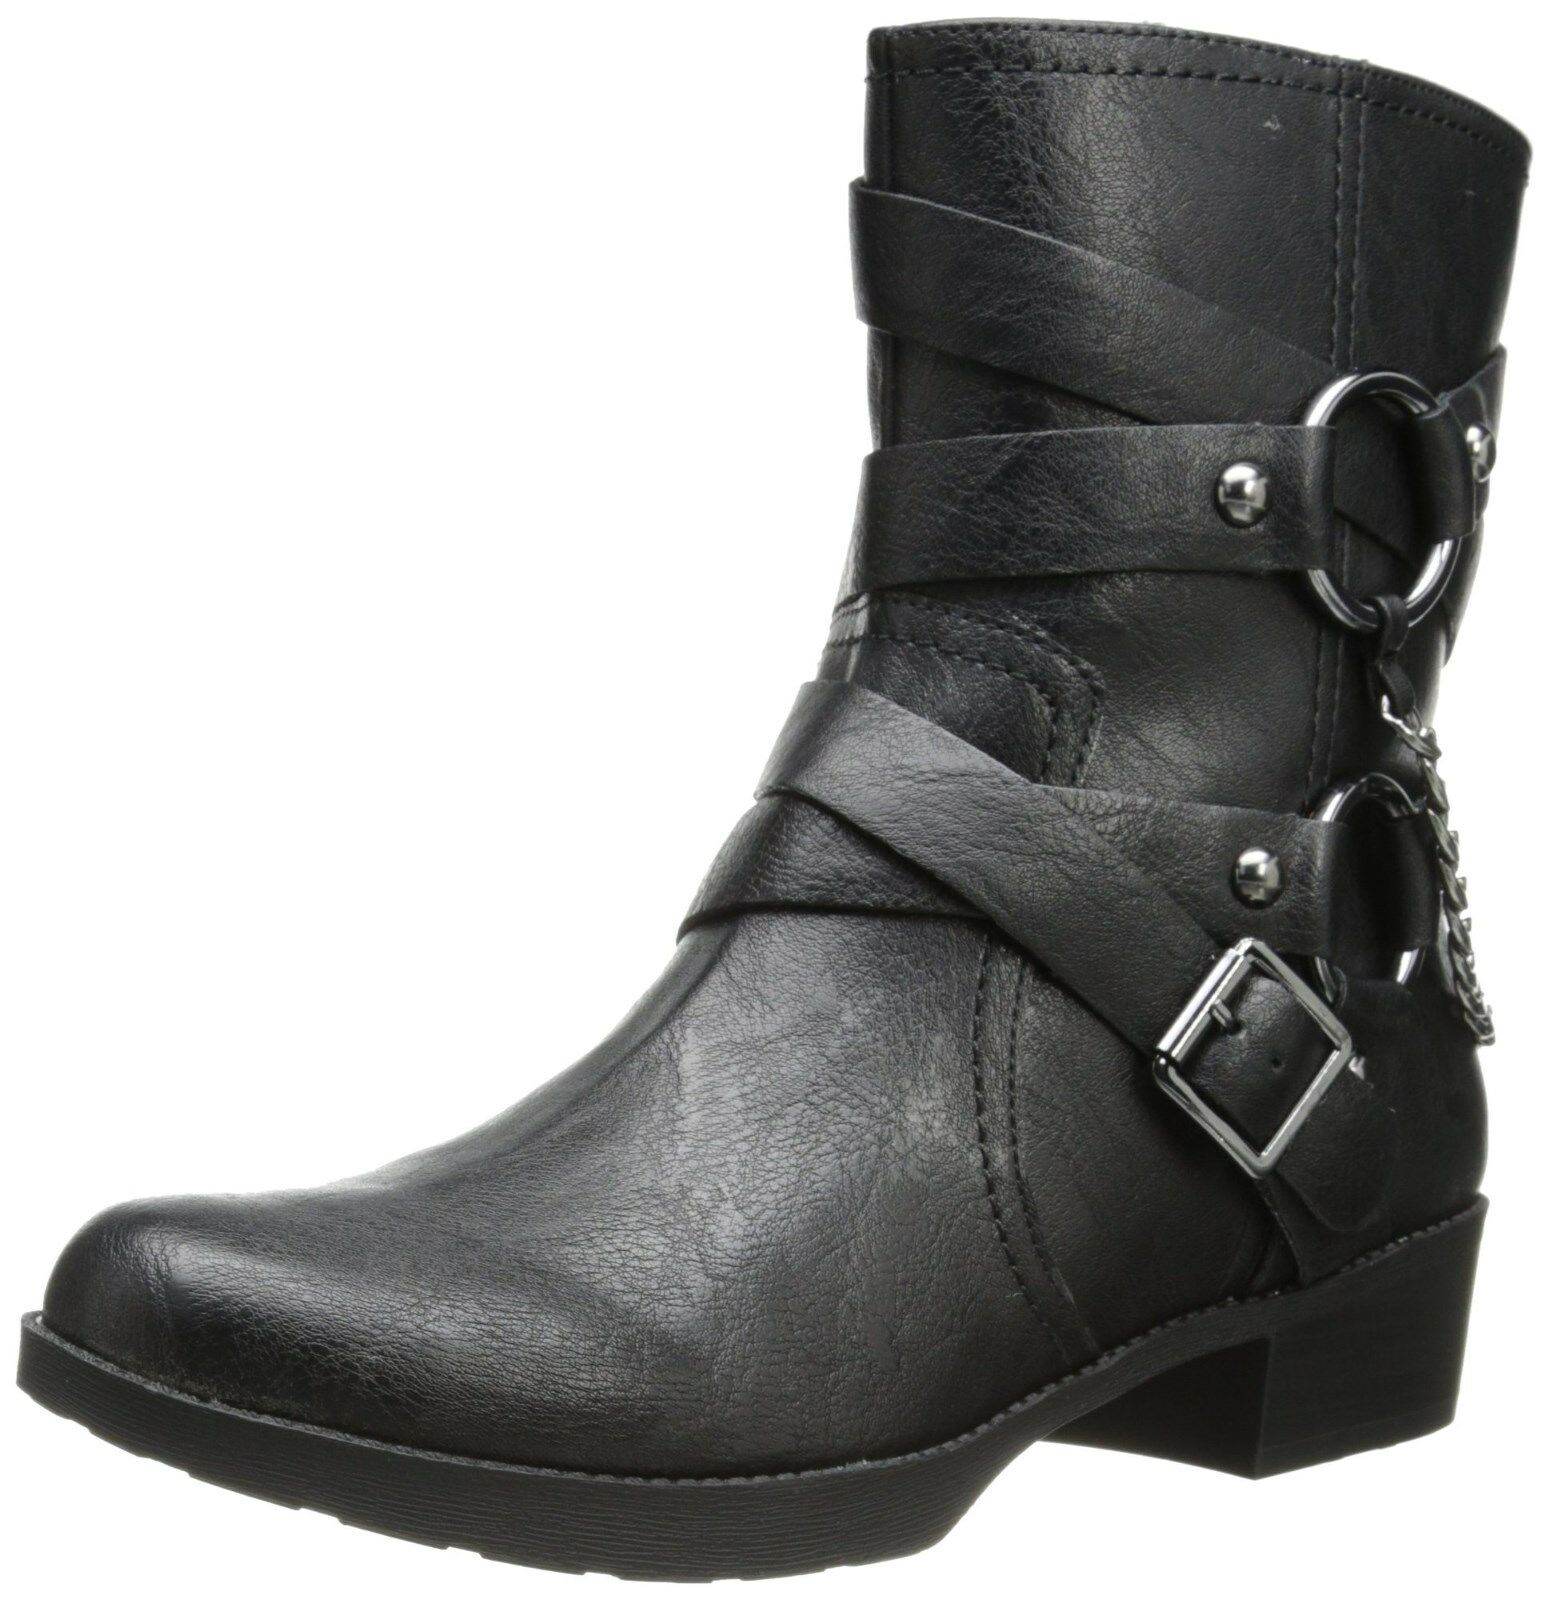 6M JESSICA SIMPSON GOLDI FAUX LEATHER BLACK  FAHION MID-CALF BOOT  AS228